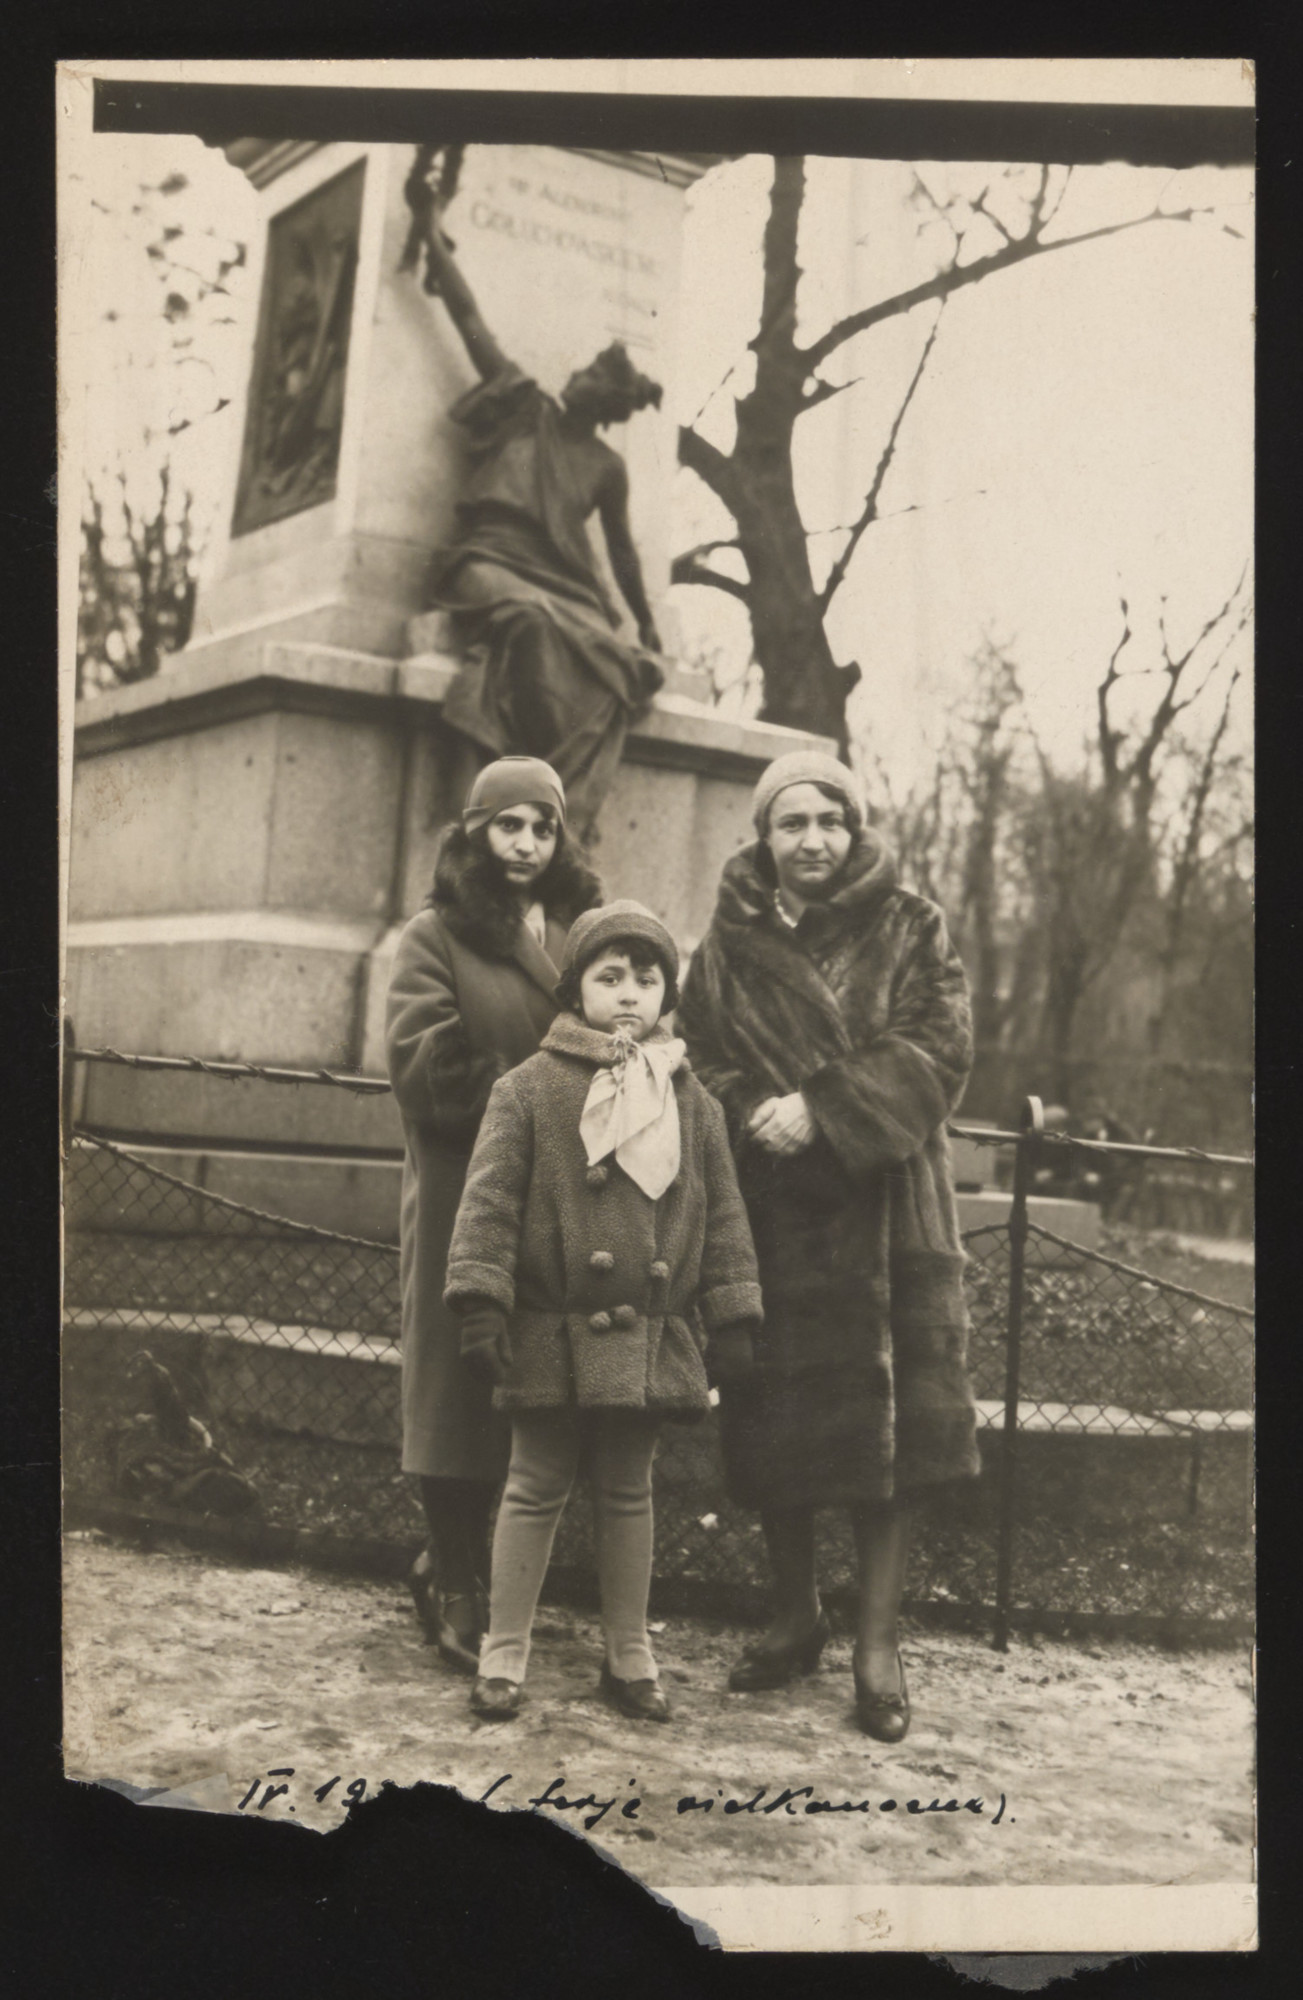 Salomea (right) and Judyta (center) Sobel pose in front of a statue in Lvov  together with an unidentified woman.